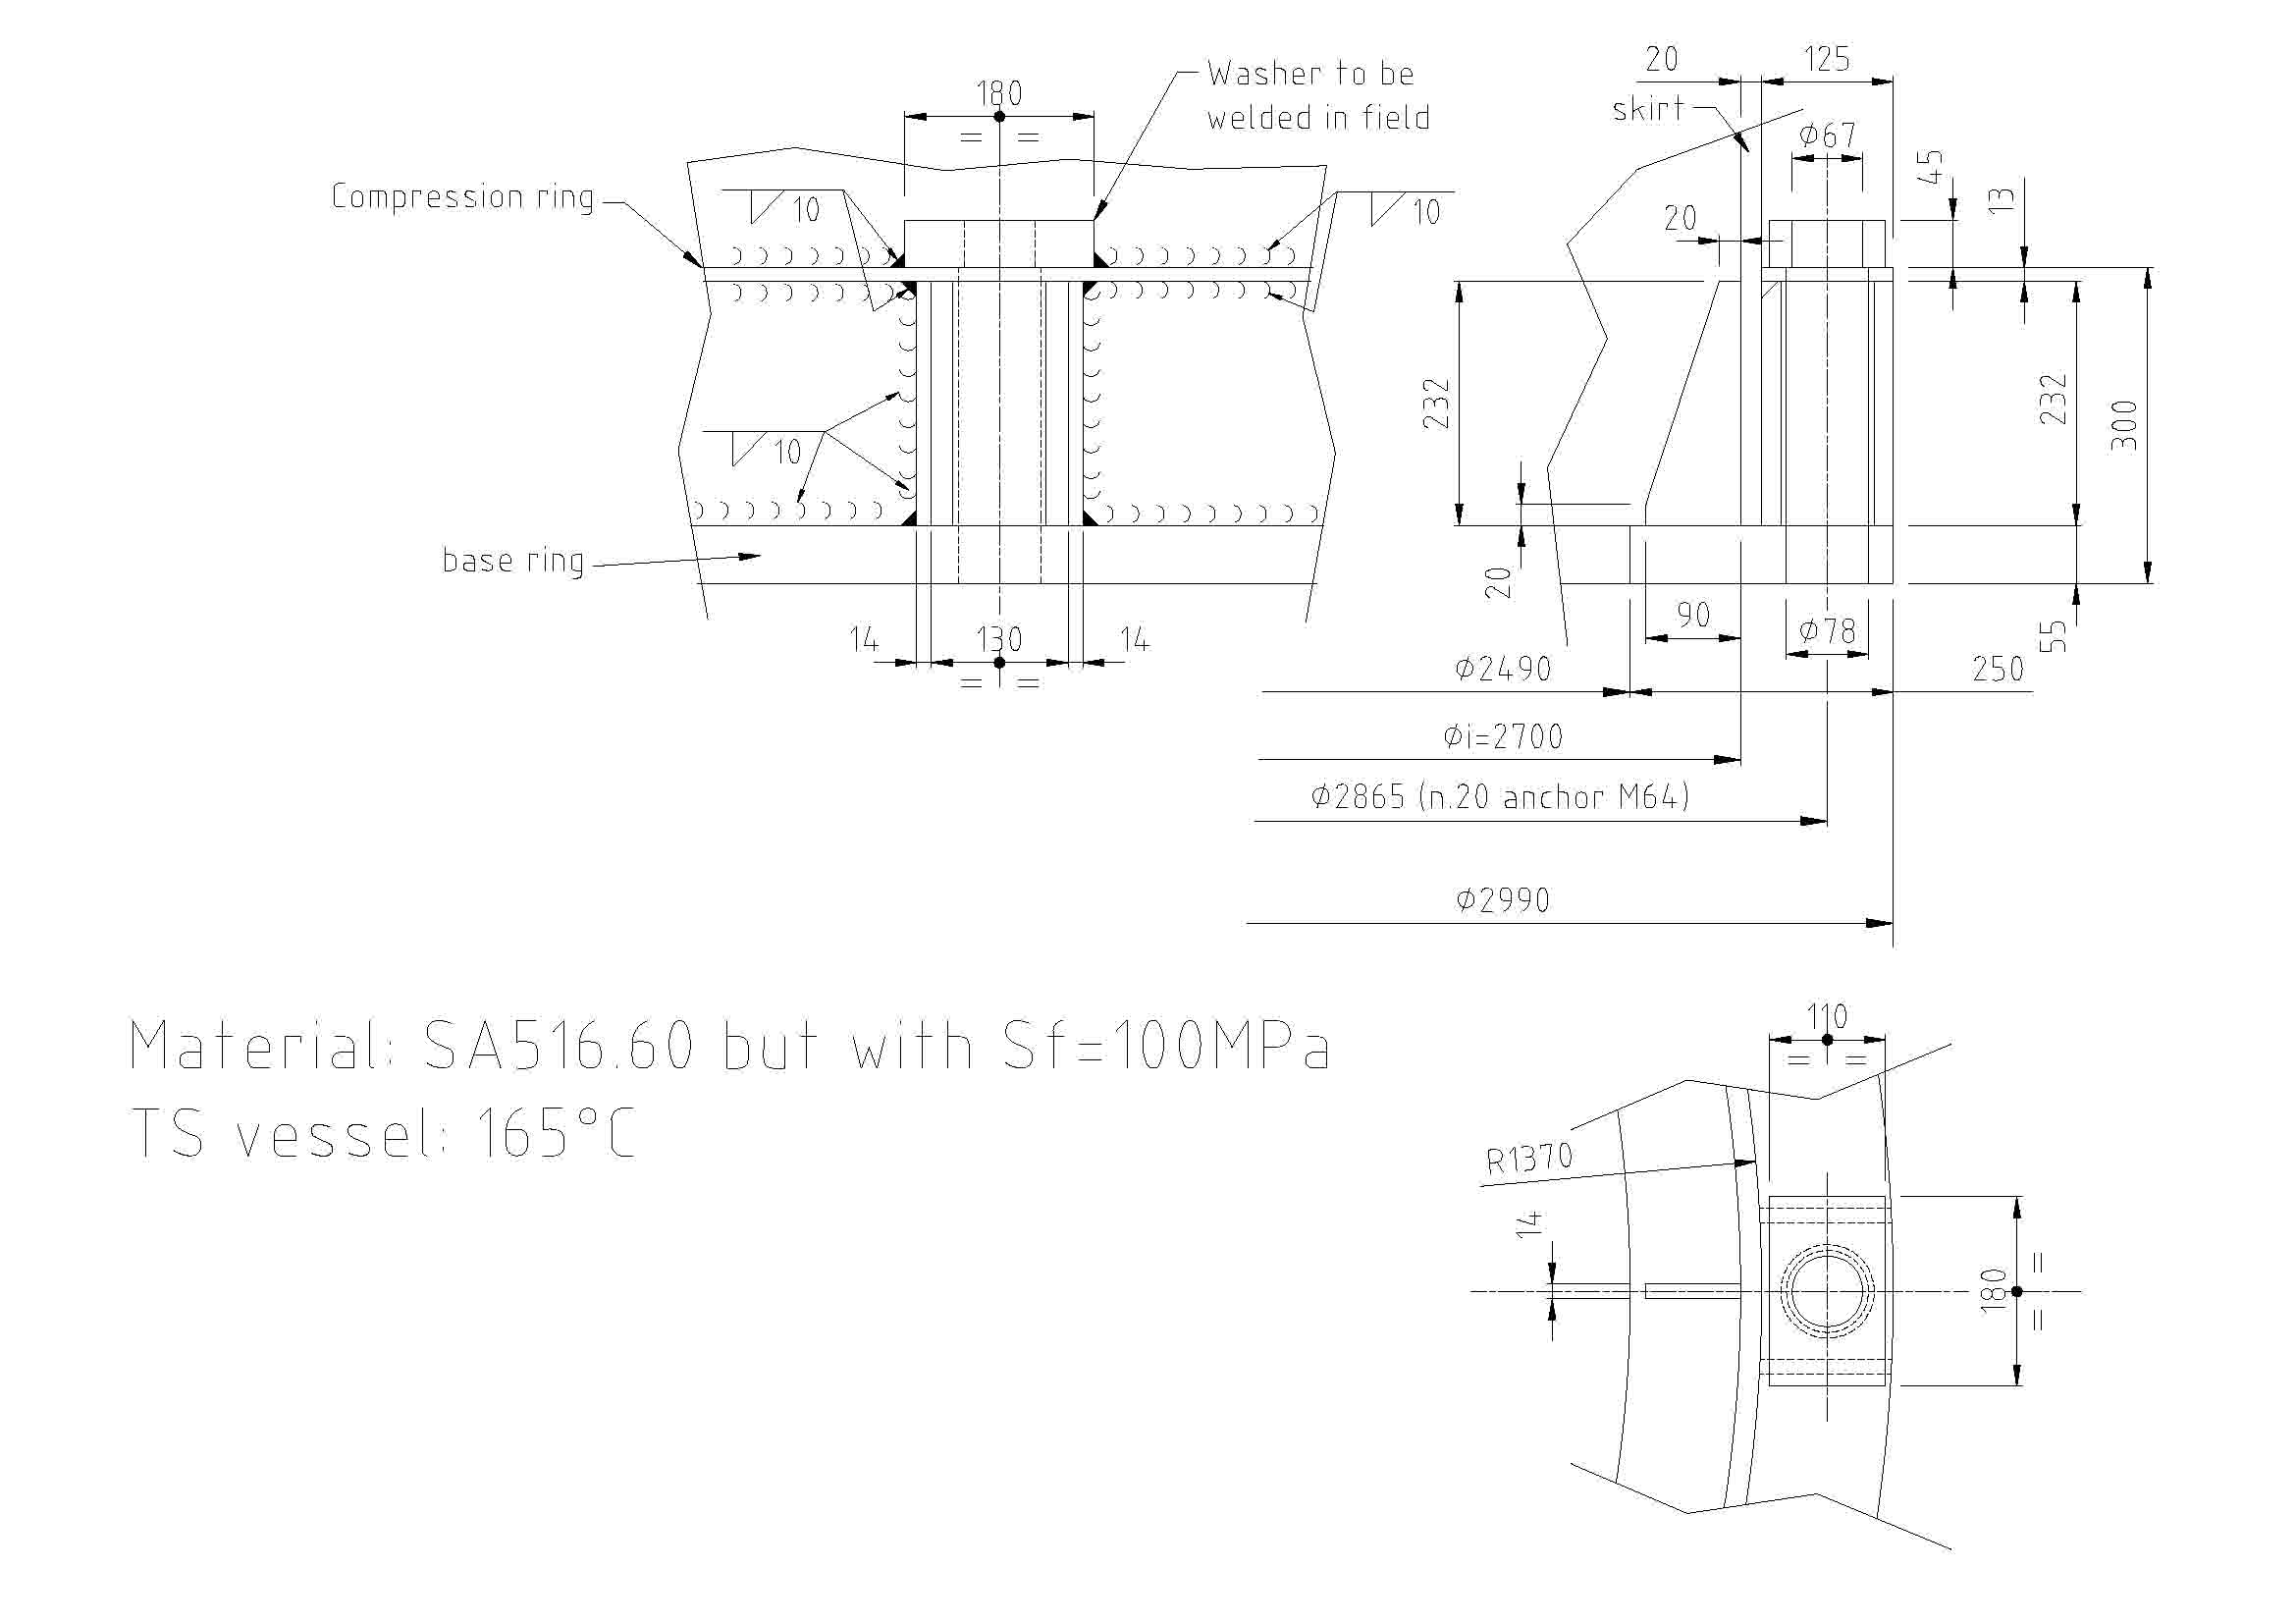 Design of skirt Base ring and Compression ring - Intergraph